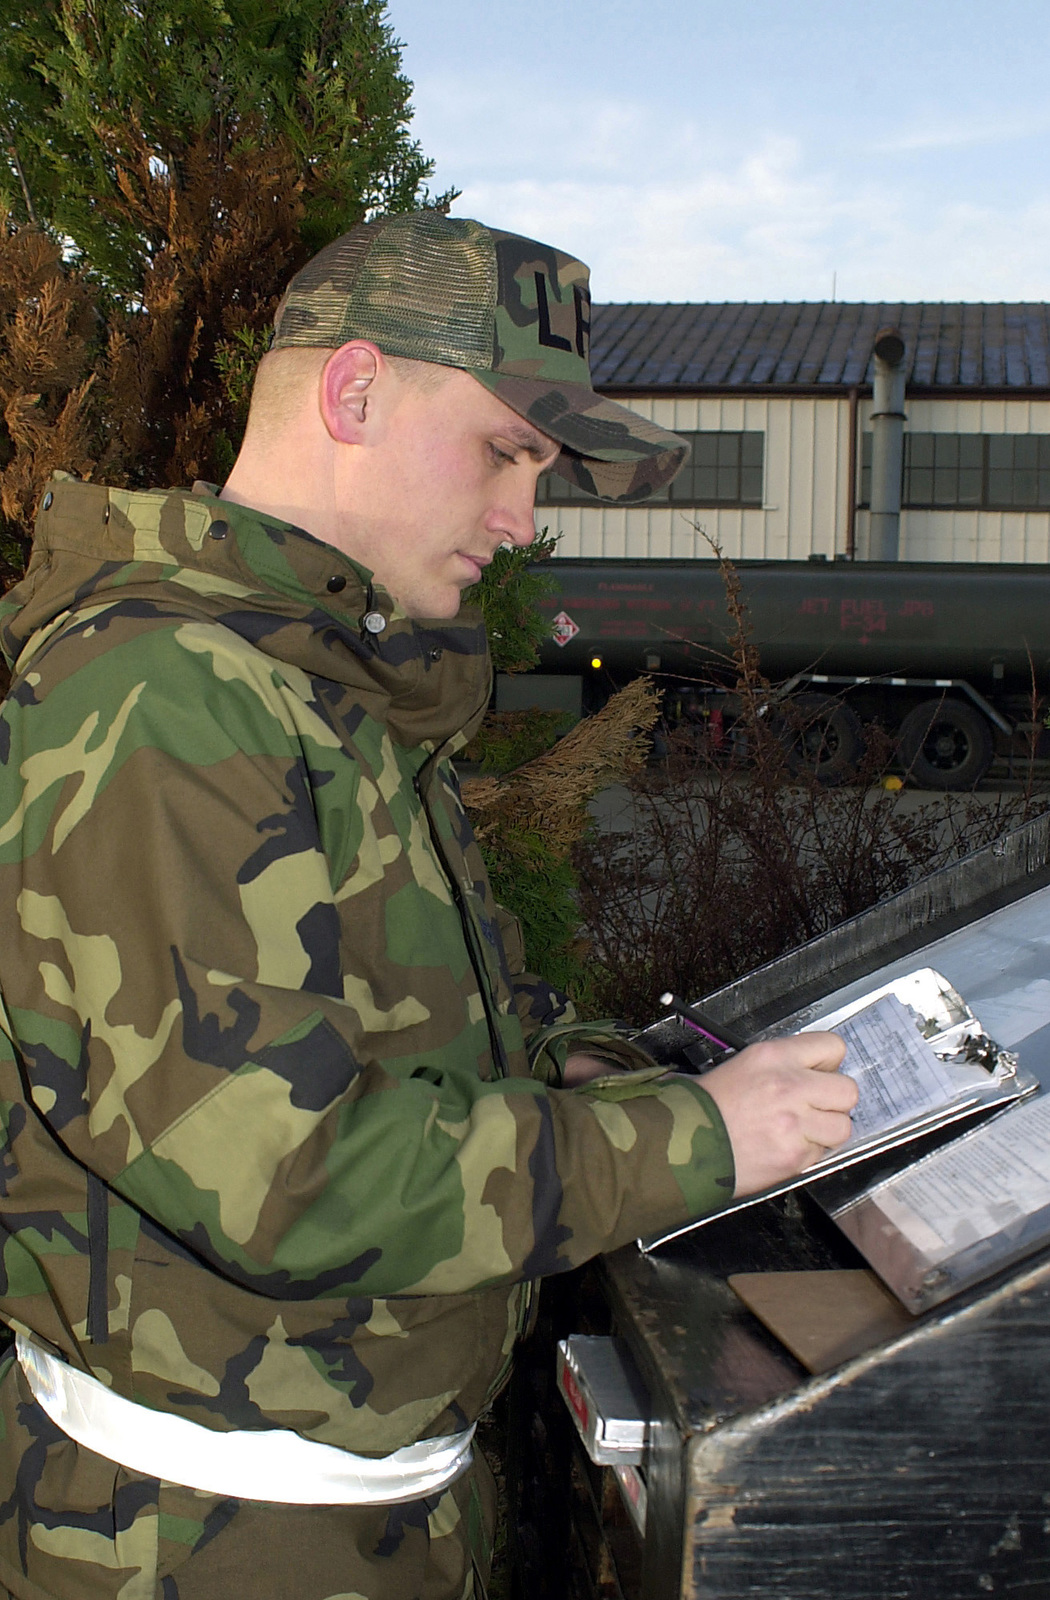 US Air Force (USAF) STAFF Sergeant (SSGT) Eric Dick, 100th Logistics Readiness Squadron (LRS), annotates fuel truck maintenance discrepancies at RAF Mildenhall, United Kingdom. The discrepancies are then reported to the Transportation Refueling Maintenance shop to schedule repairs